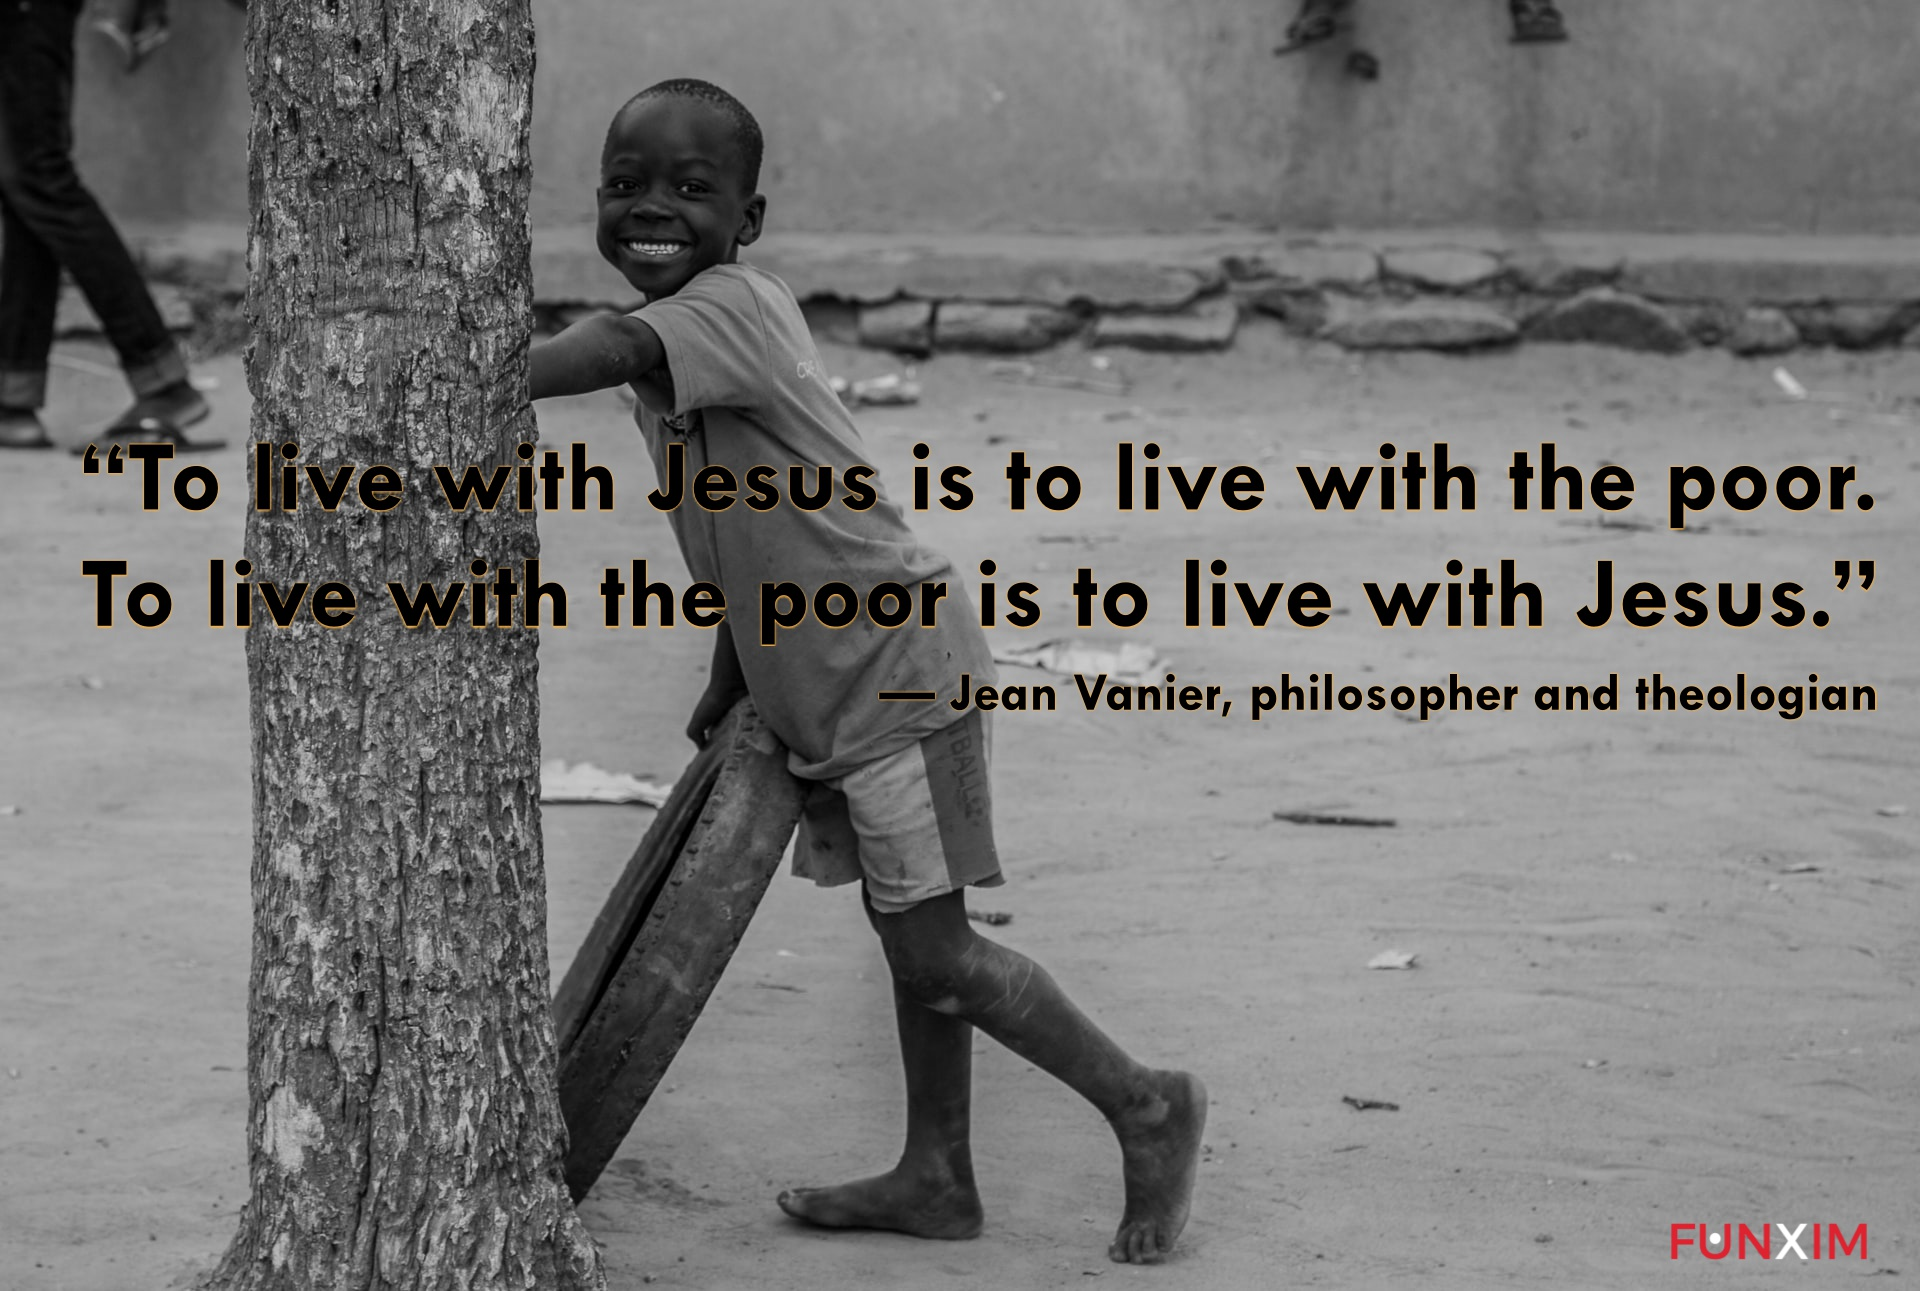 """""""To live with Jesus is to live with the poor. To live with the poor is to live with Jesus."""" — Jean Vanier, philosopher and theologian"""